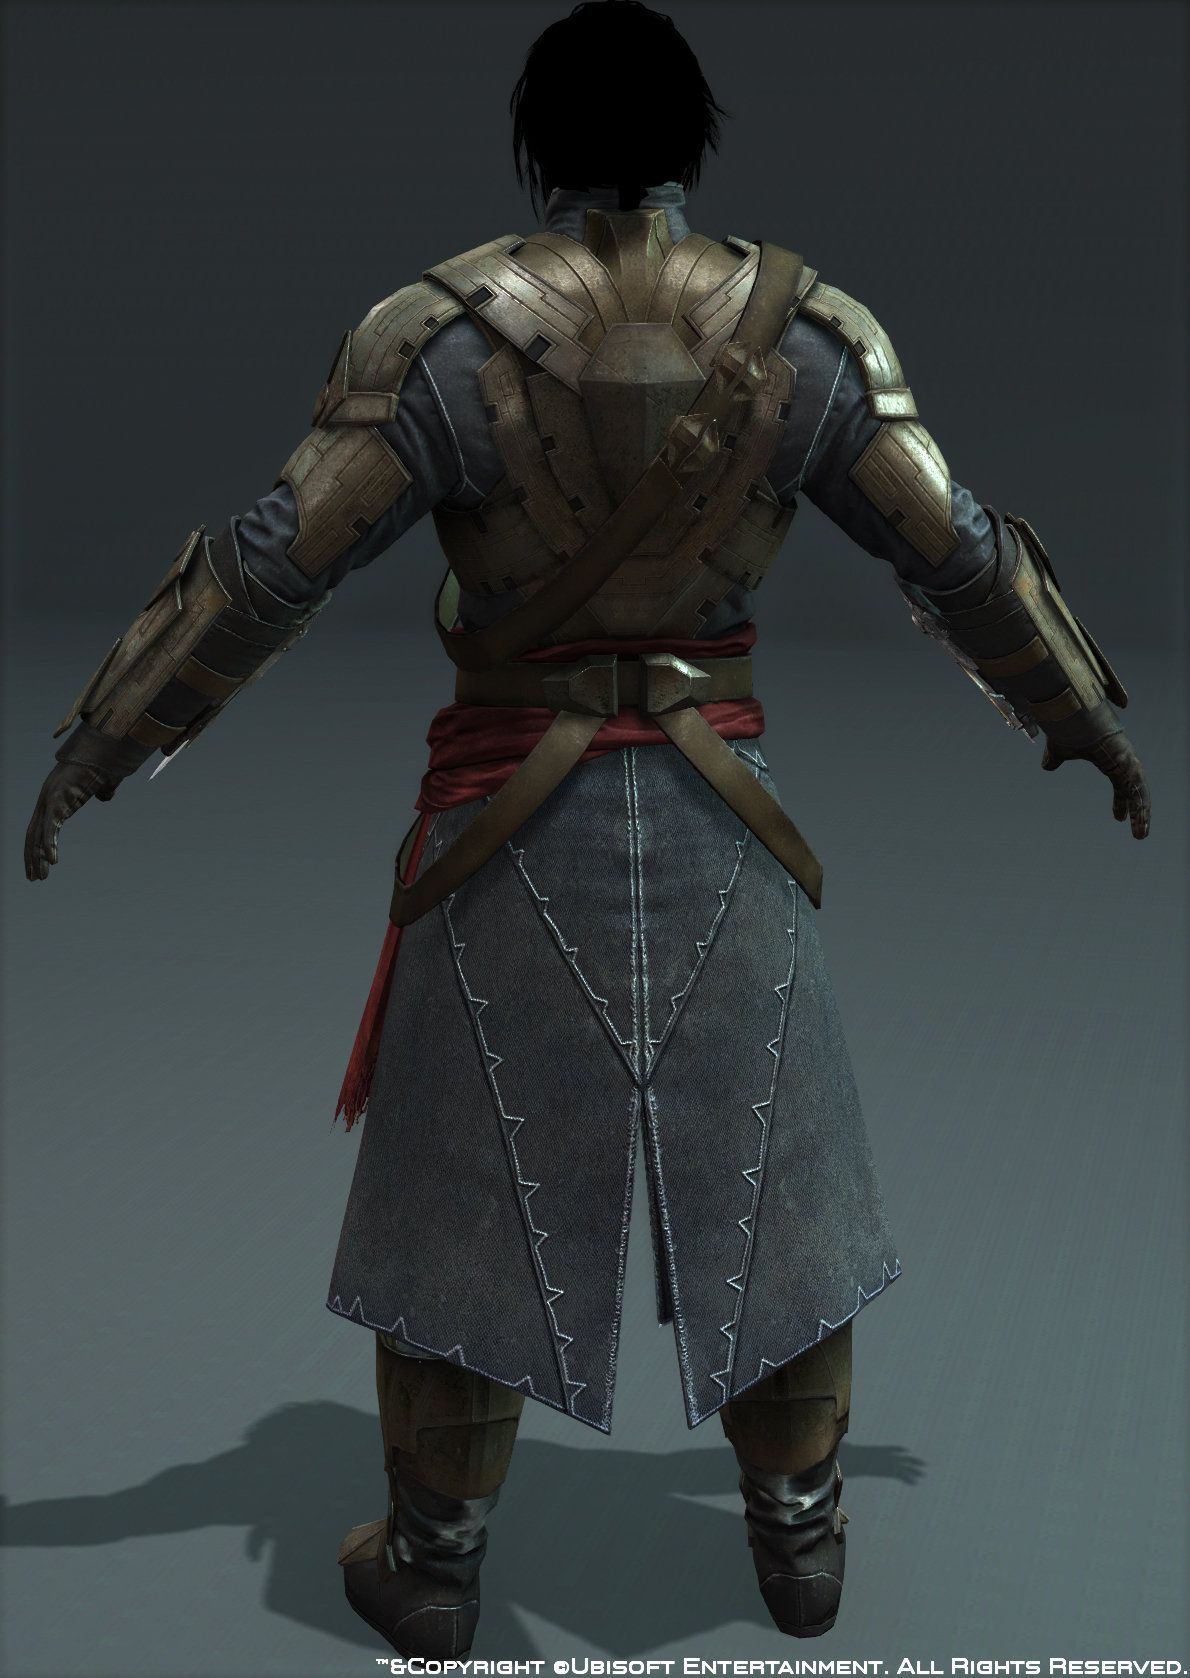 Dlc Outfit For Jacob Bracer And Head From Other Teamates